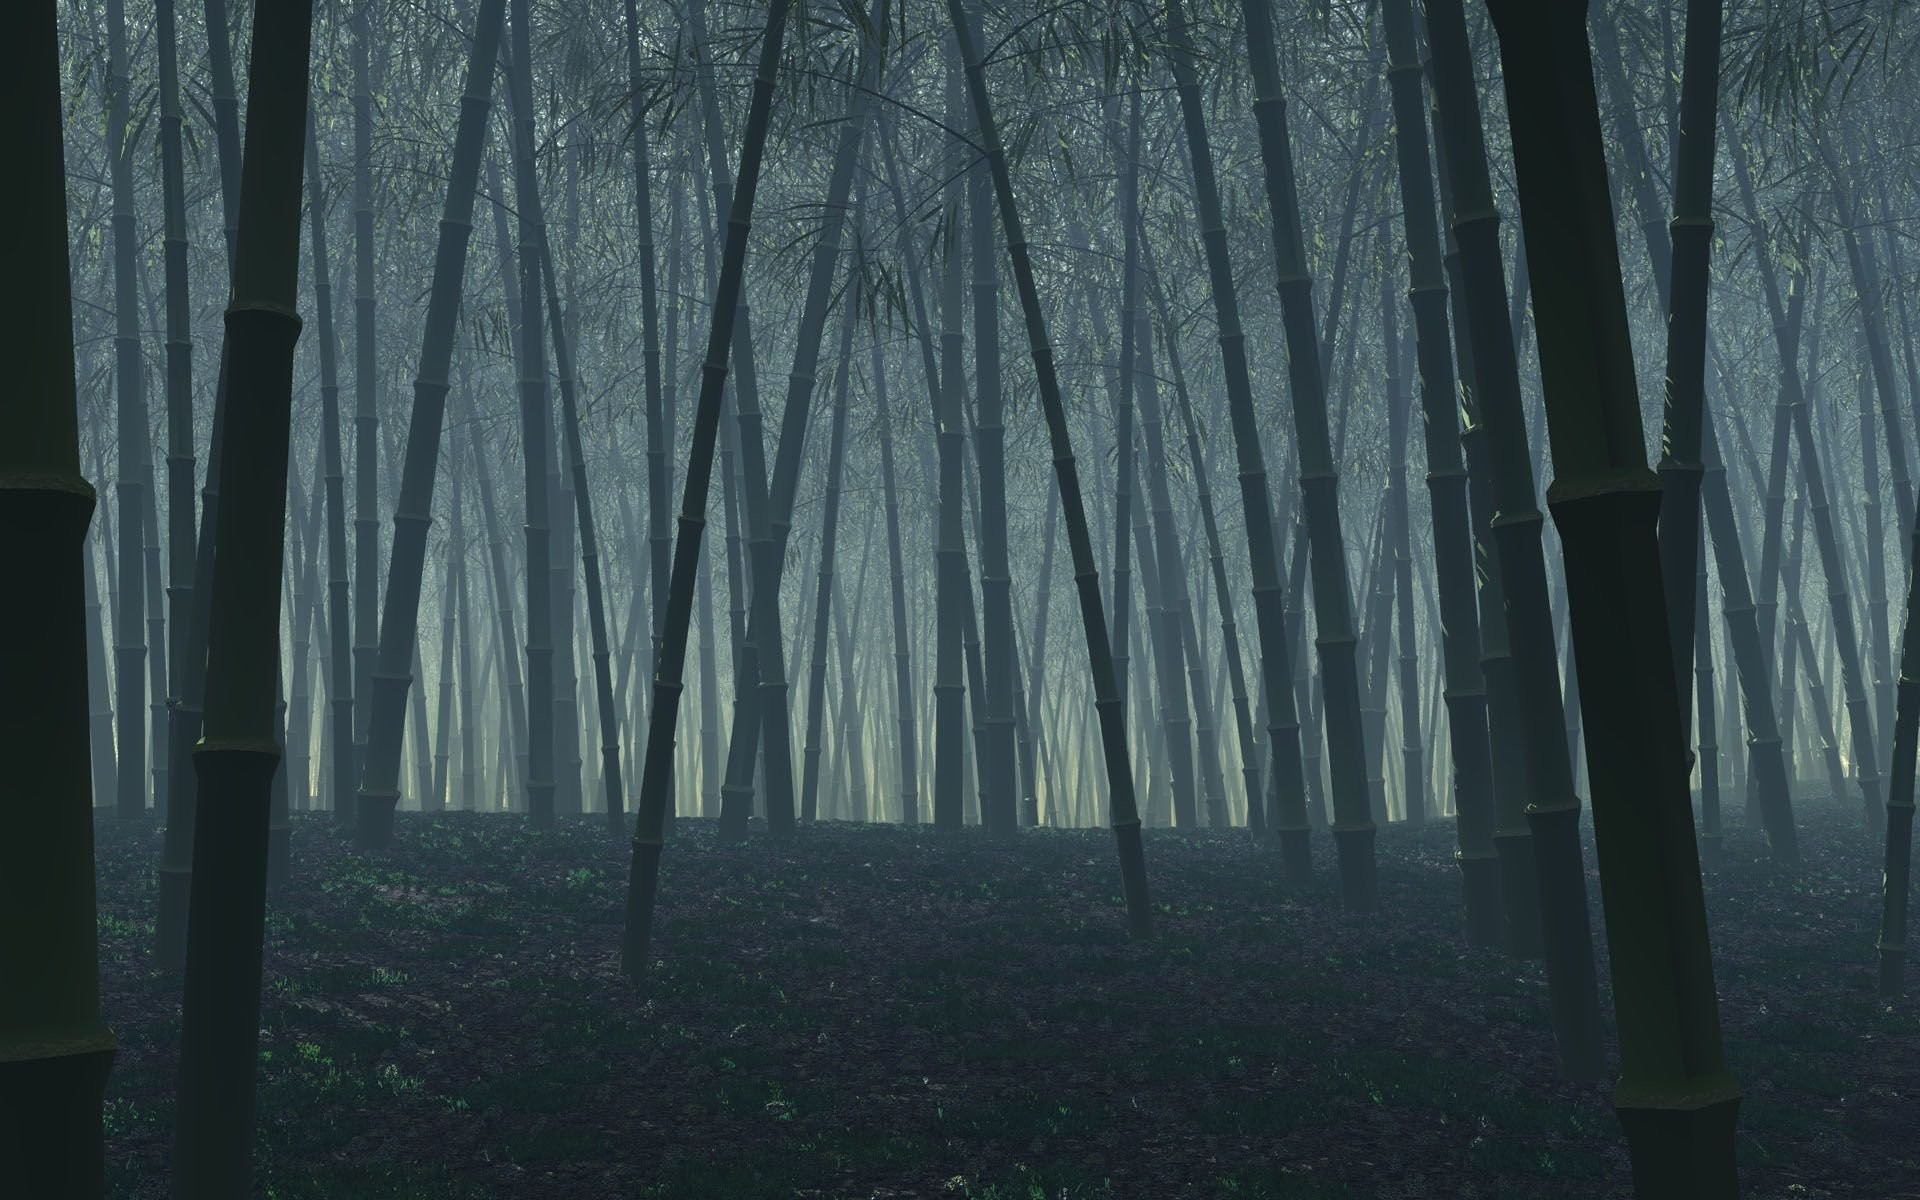 1920x1200 Dark Bamboo Forest Desktop Background.